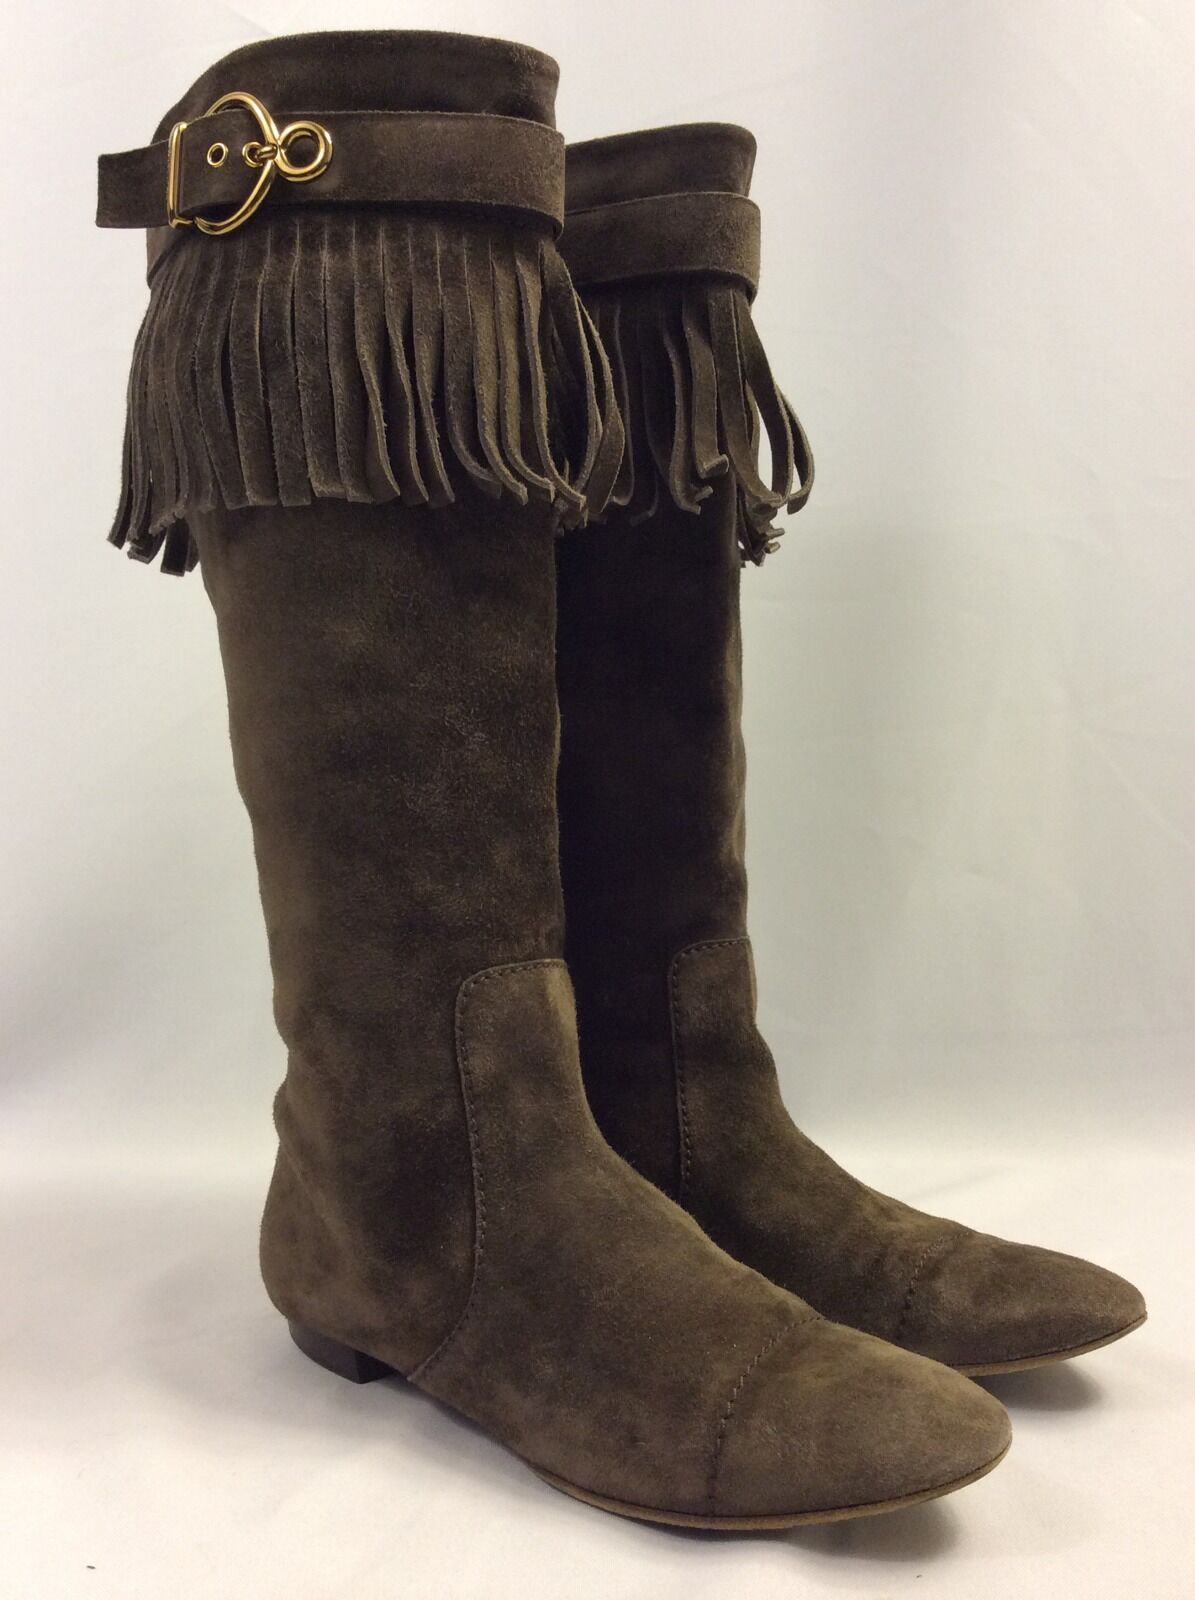 LOUIS VUITTON Dark Brown Suede Pull On Boots Fringe Trim and Gold Buckle Sz 36.5